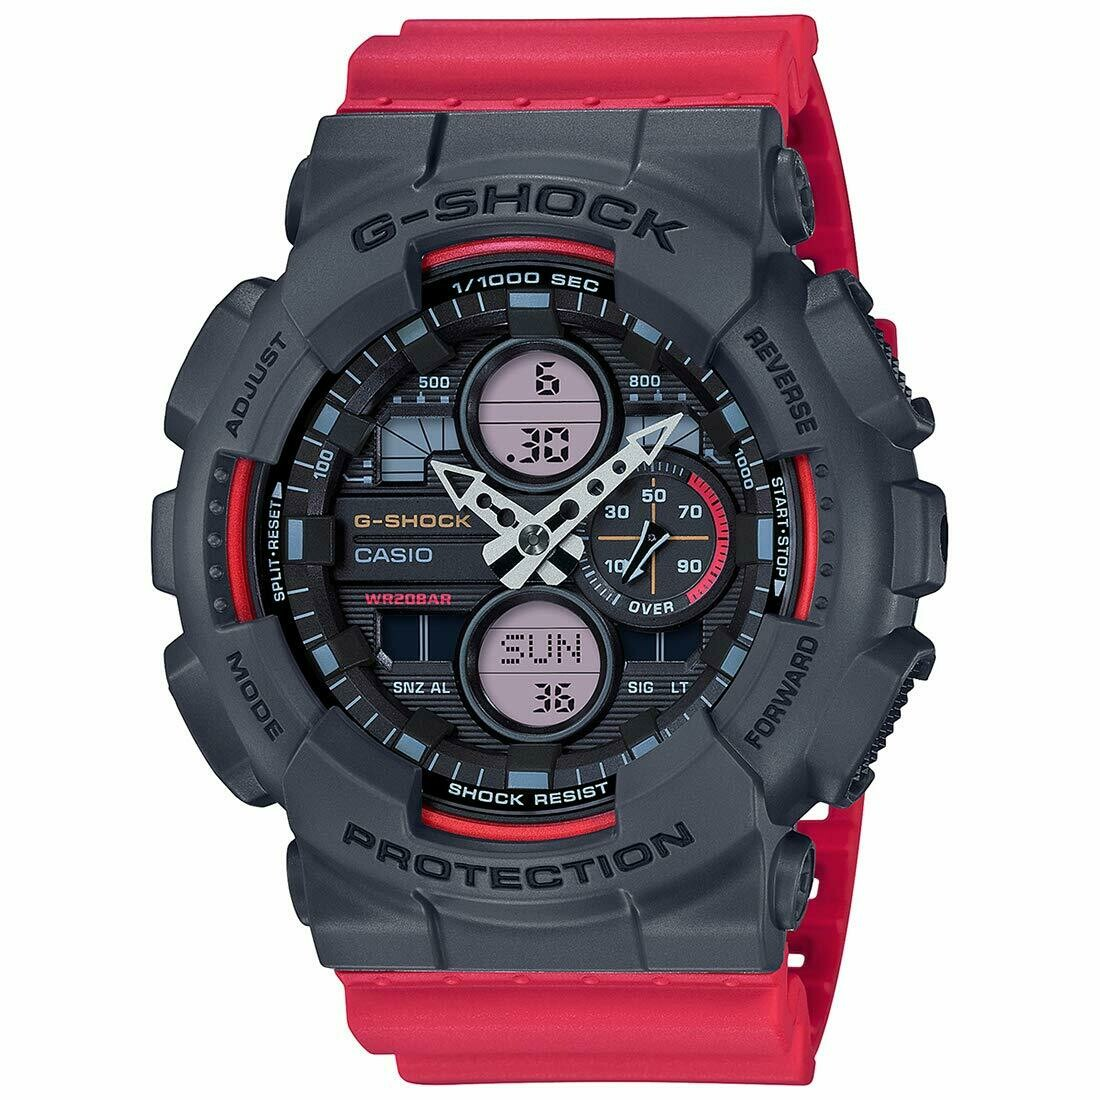 Casio G-Shock GA-140-4ADR Red Resin Watch For Men